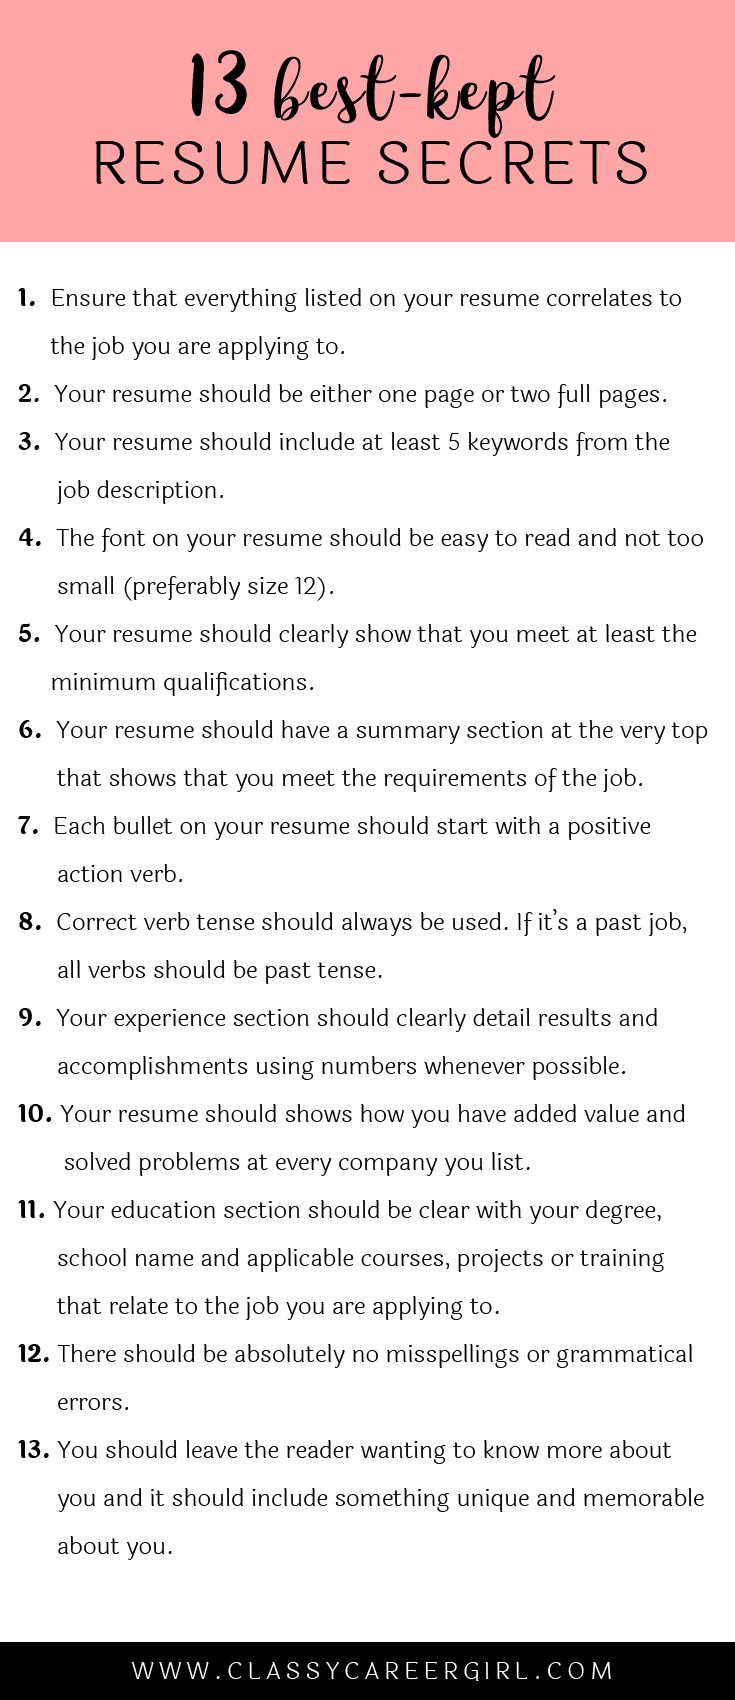 Opposenewapstandardsus  Marvelous  Ideas About Resume On Pinterest  Cv Format Resume Cv And  With Goodlooking Some Hiring Managers Will Toss Your Resume Out If You Dont Know These  With Beautiful Careerbuilder Resume Search Also Pharmacist Resume Sample In Addition How To Write A Nursing Resume And Computer Programmer Resume As Well As Warehouse Resume Examples Additionally Accounting Student Resume From Pinterestcom With Opposenewapstandardsus  Goodlooking  Ideas About Resume On Pinterest  Cv Format Resume Cv And  With Beautiful Some Hiring Managers Will Toss Your Resume Out If You Dont Know These  And Marvelous Careerbuilder Resume Search Also Pharmacist Resume Sample In Addition How To Write A Nursing Resume From Pinterestcom